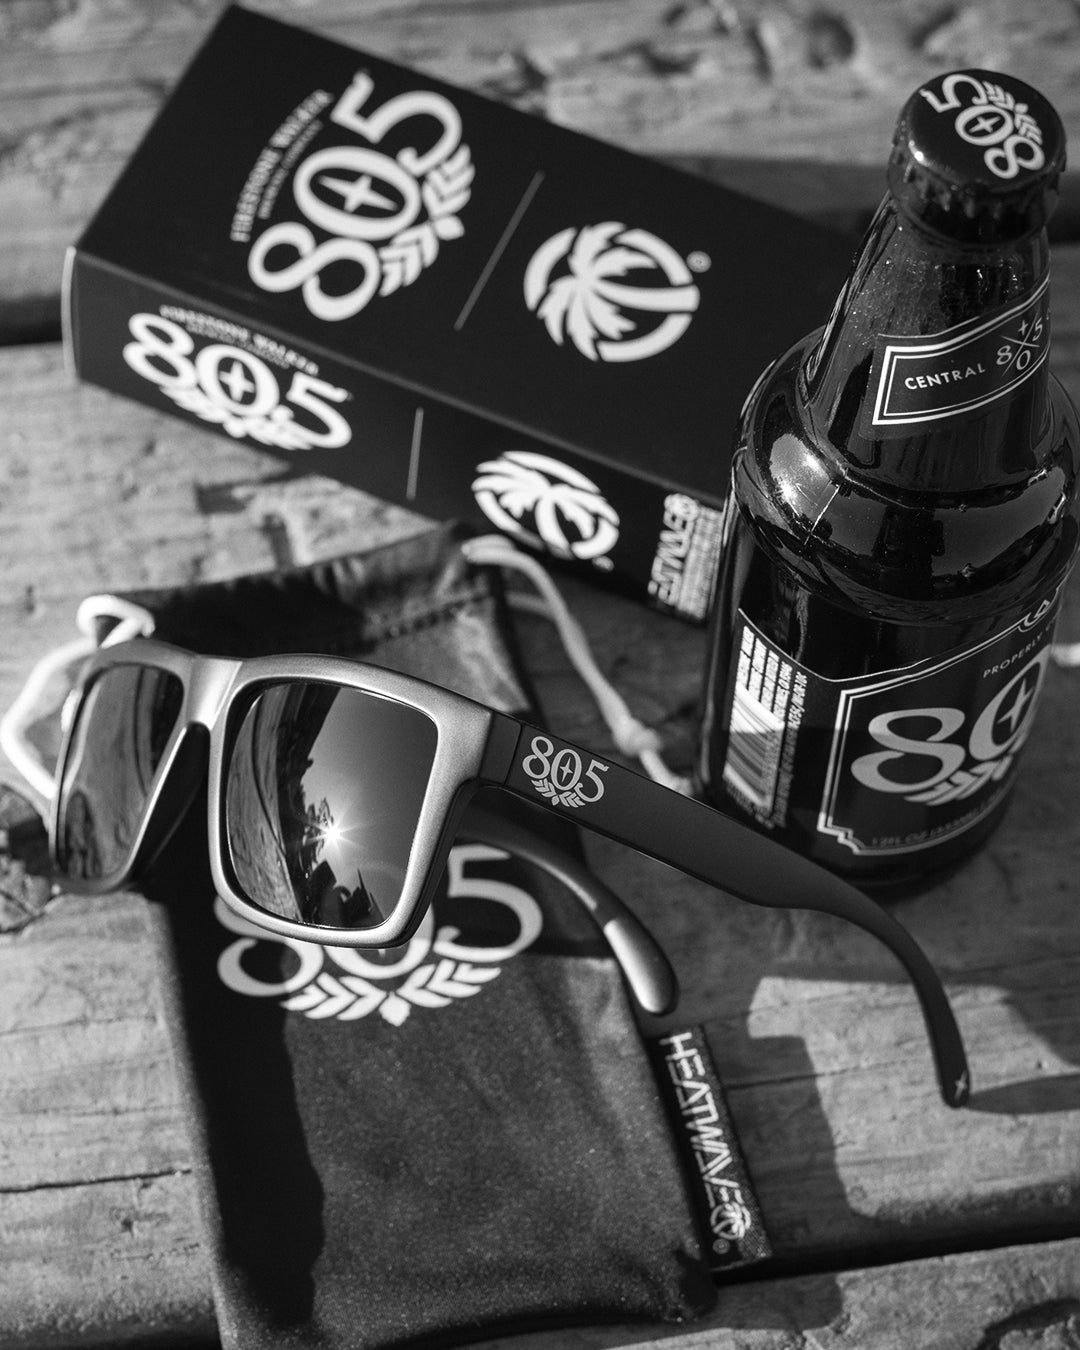 805 beer sunglasses Heat Wave Visual